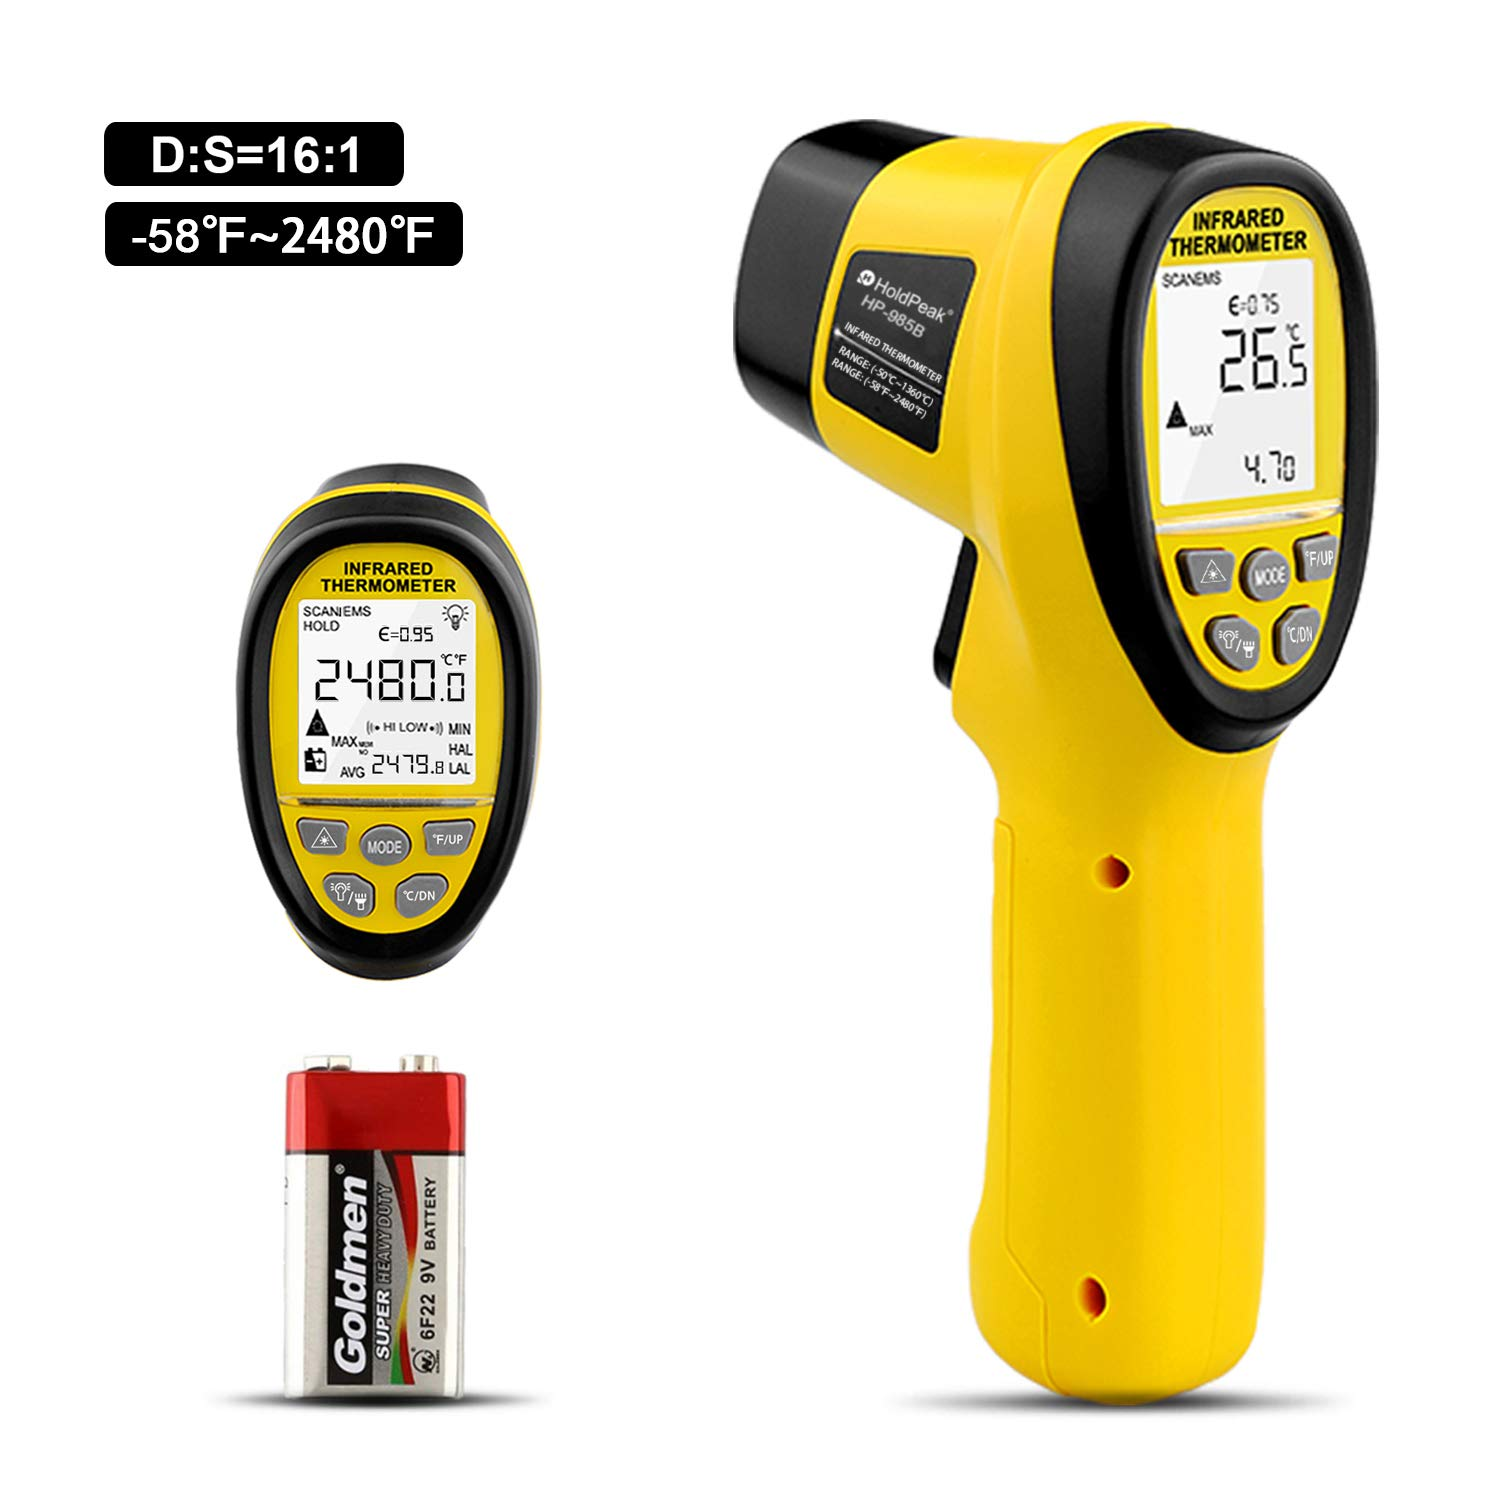 HOLDPEAK HP-985B Digital Infrared Thermometer Dual Laser Thermometer Non-Contact Temperature Gun -58℉~2480℉ (-50℃~1360℃) with Data Hold & Adjustable Emissivity for Forge Melting Furnace Kilns Industry